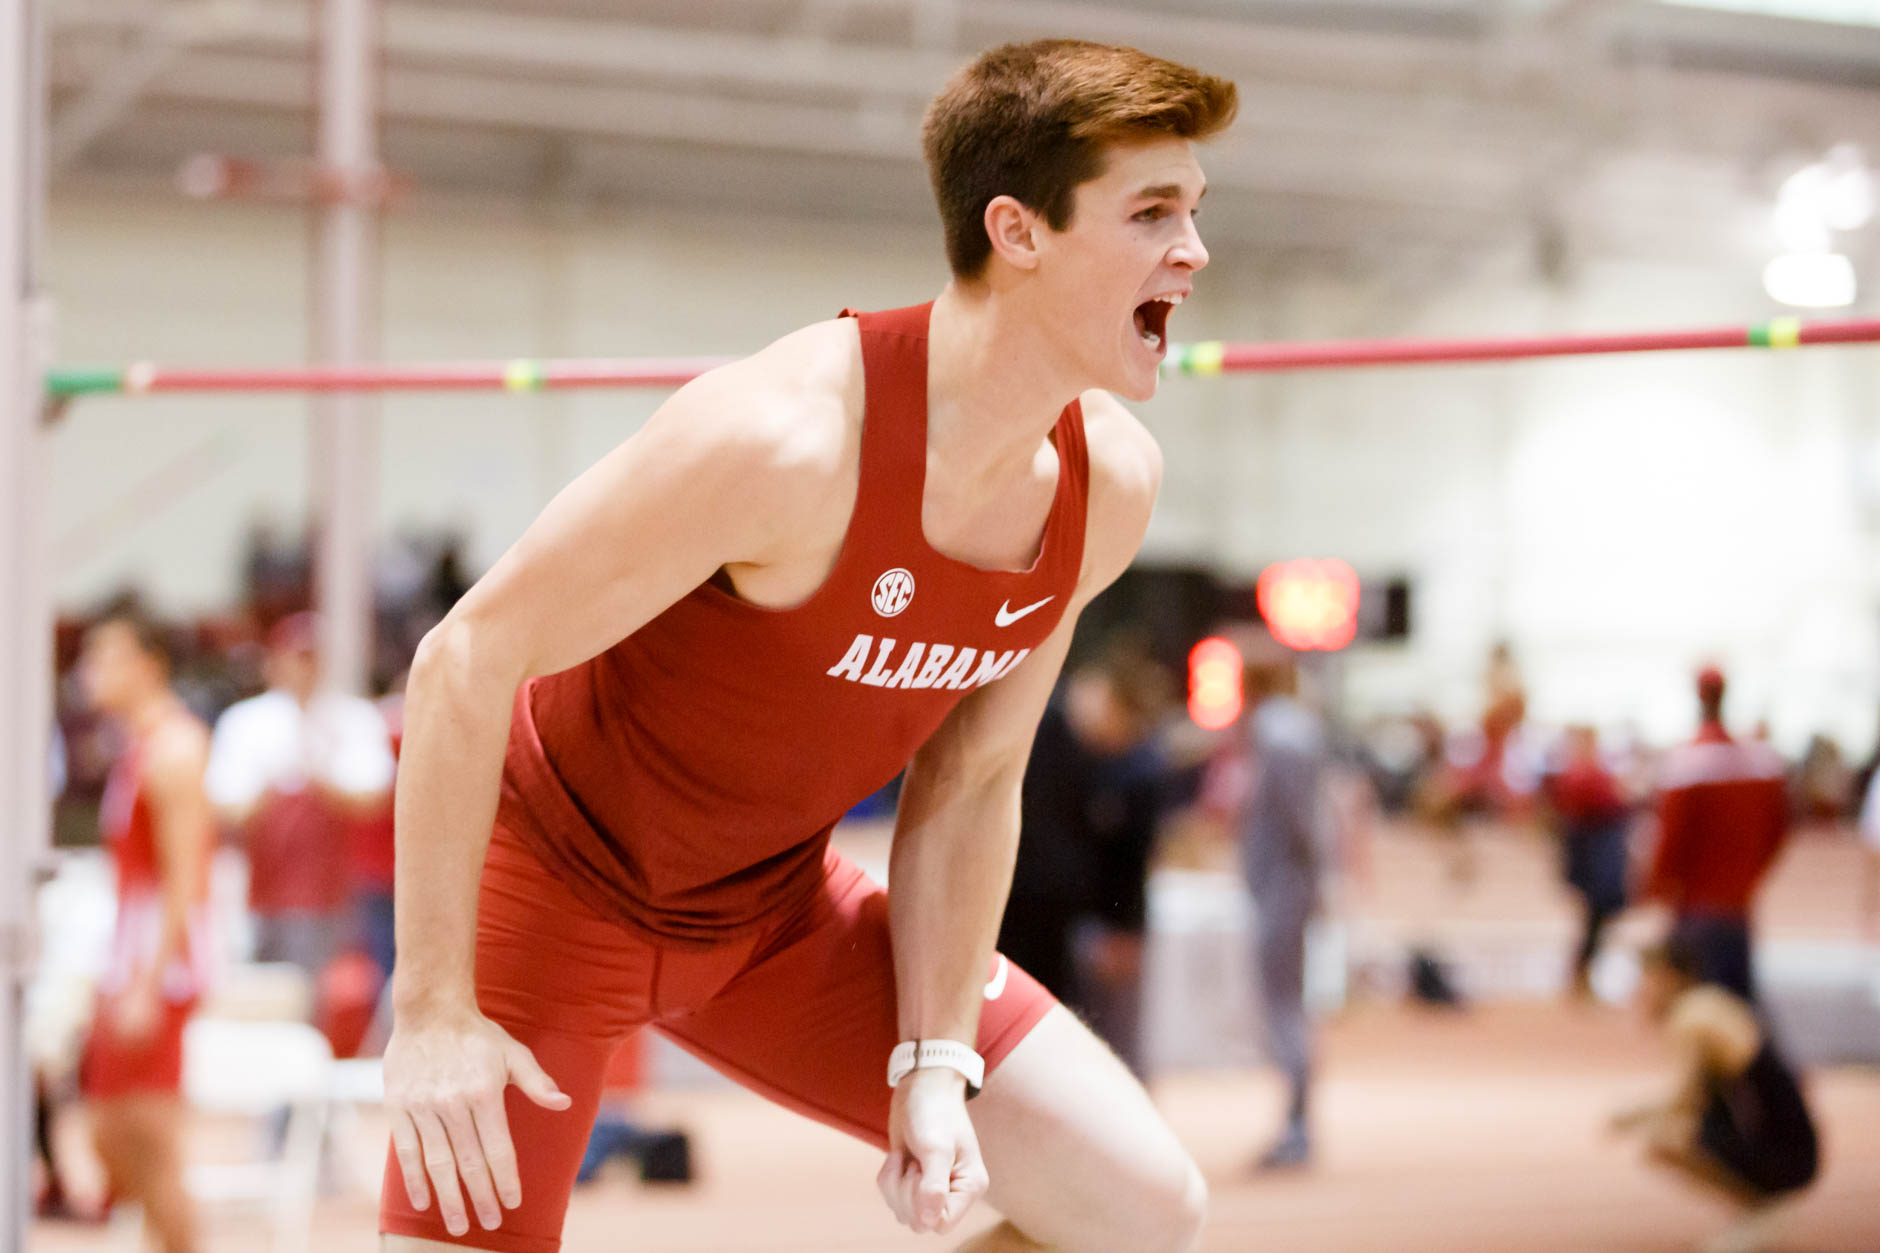 Alabama's Jake Spotswood reacts after clearing 7 feet in the high jump during the Indiana University Relays in Bloomington, Indiana on Saturday, Feb. 1, 2020. (Photo by James Brosher)